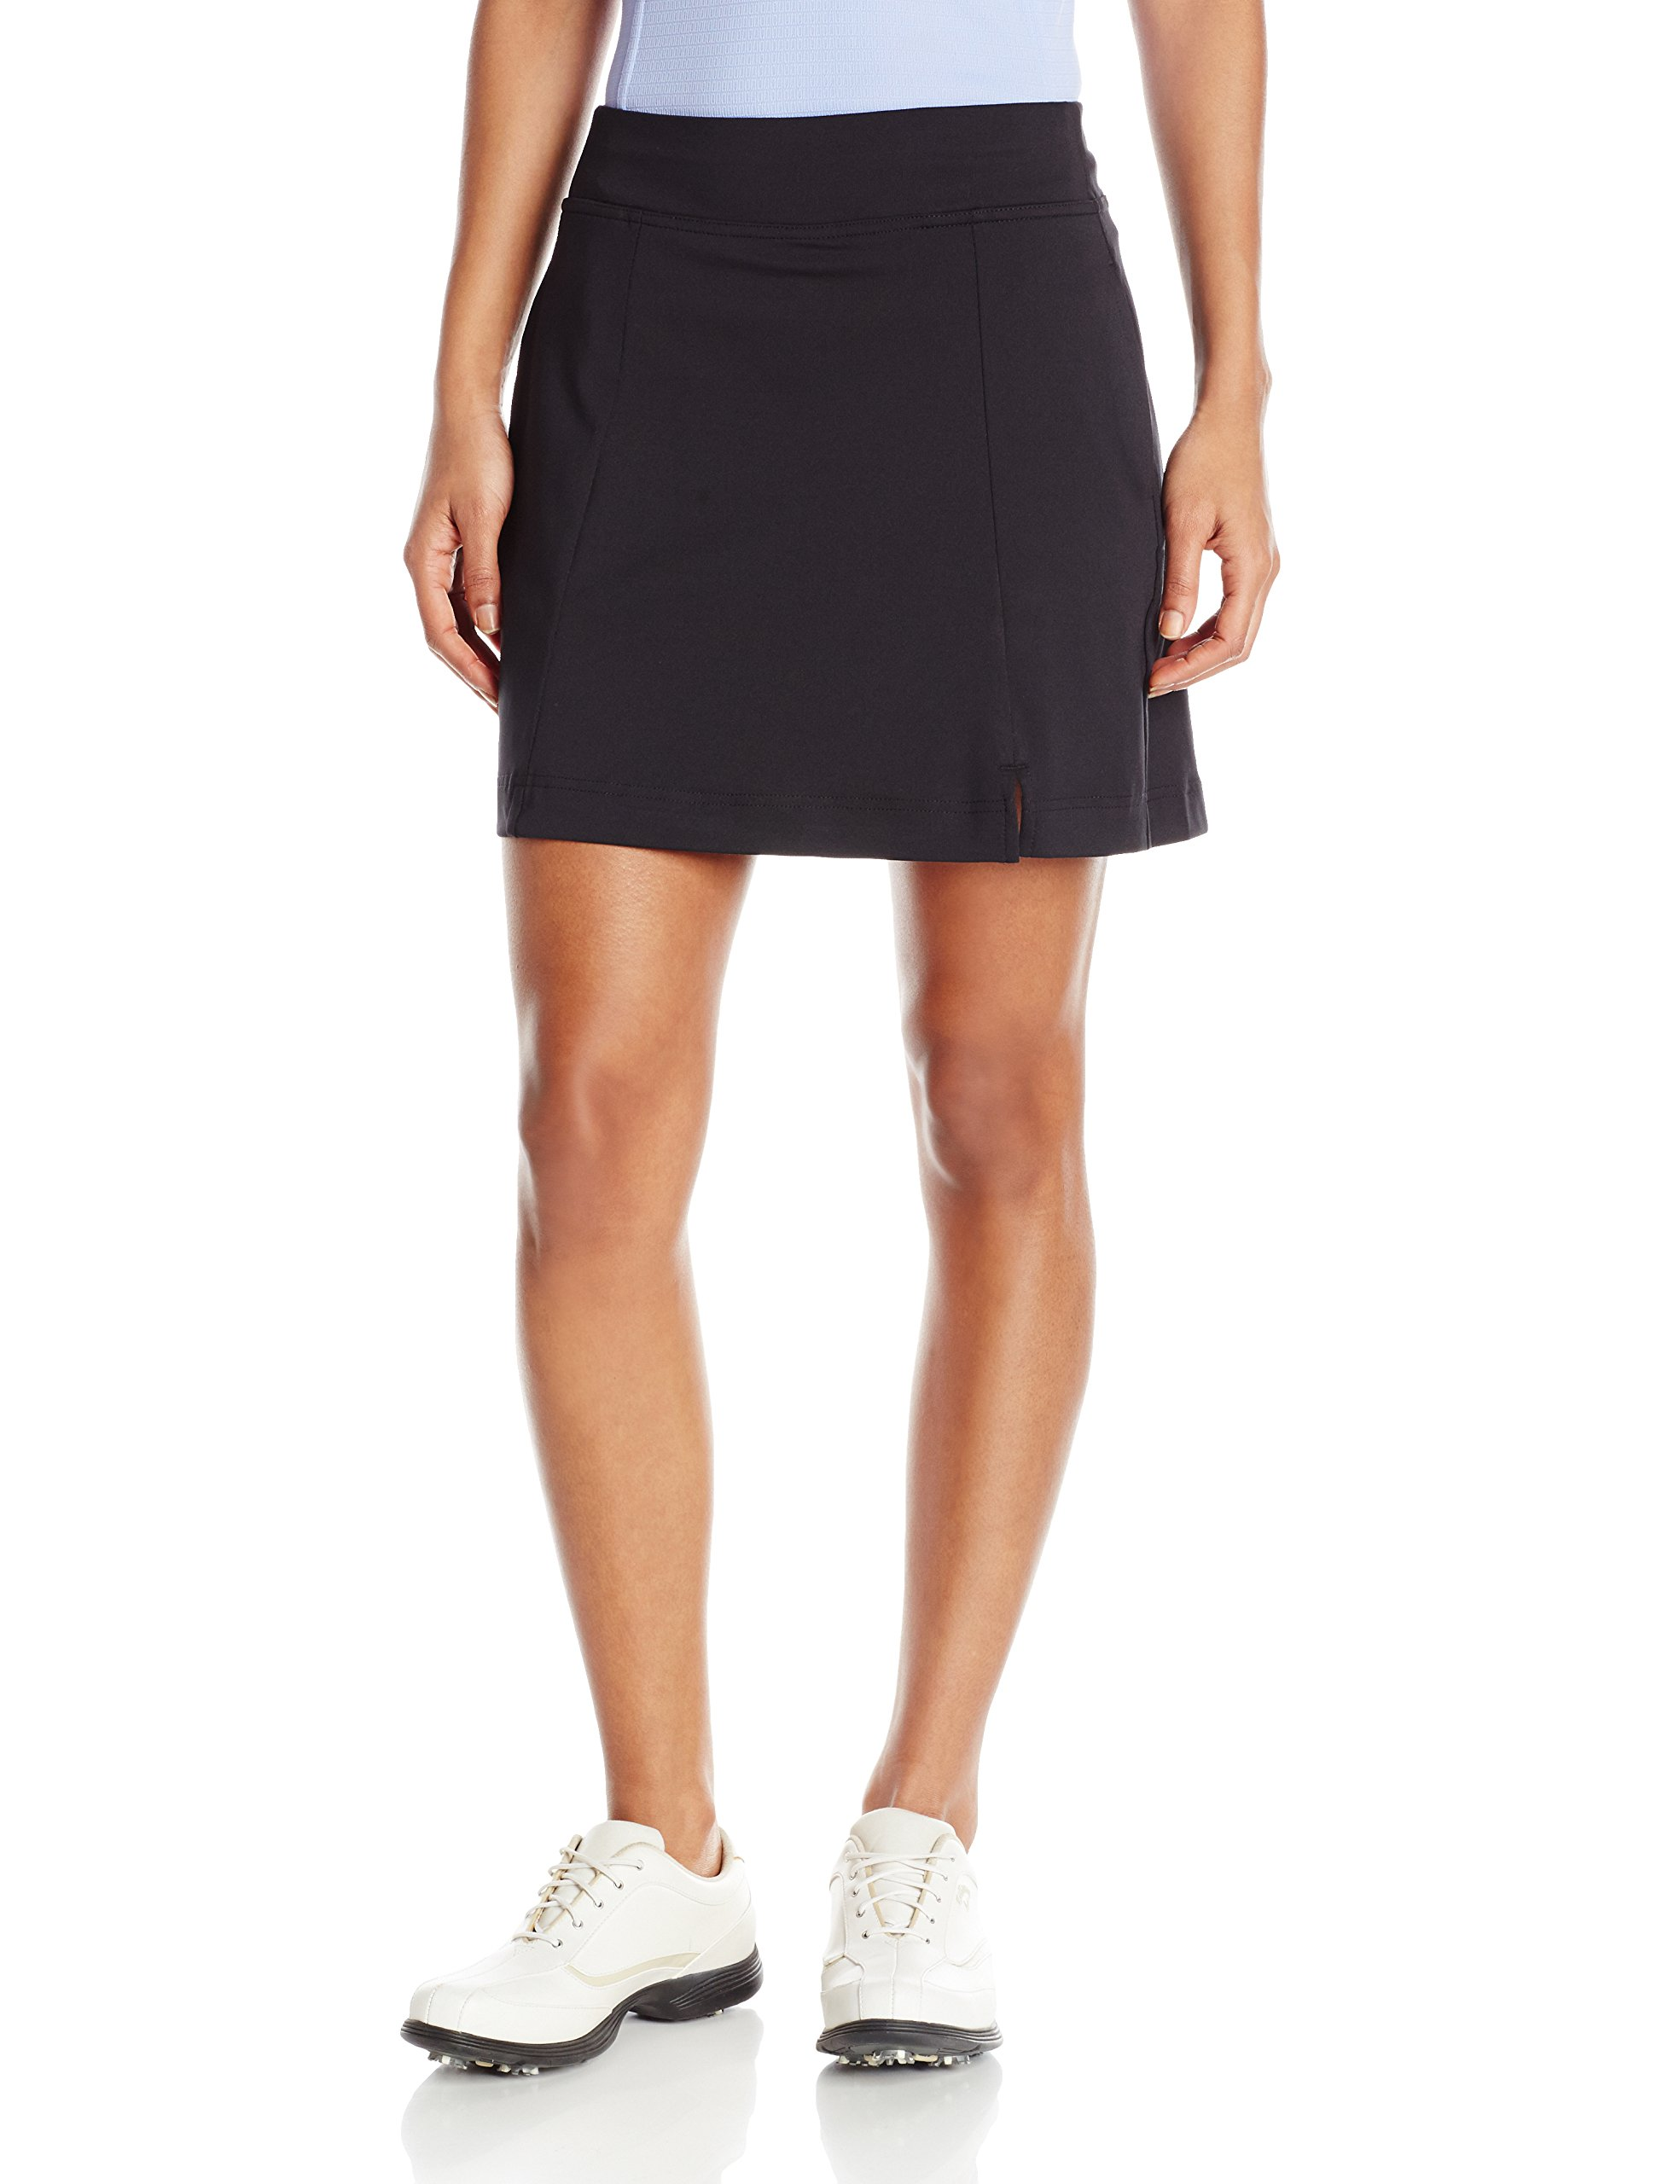 Callaway Women's Golf Performance 17' Knit Skort with Tummy Control, Caviar, Medium by Callaway